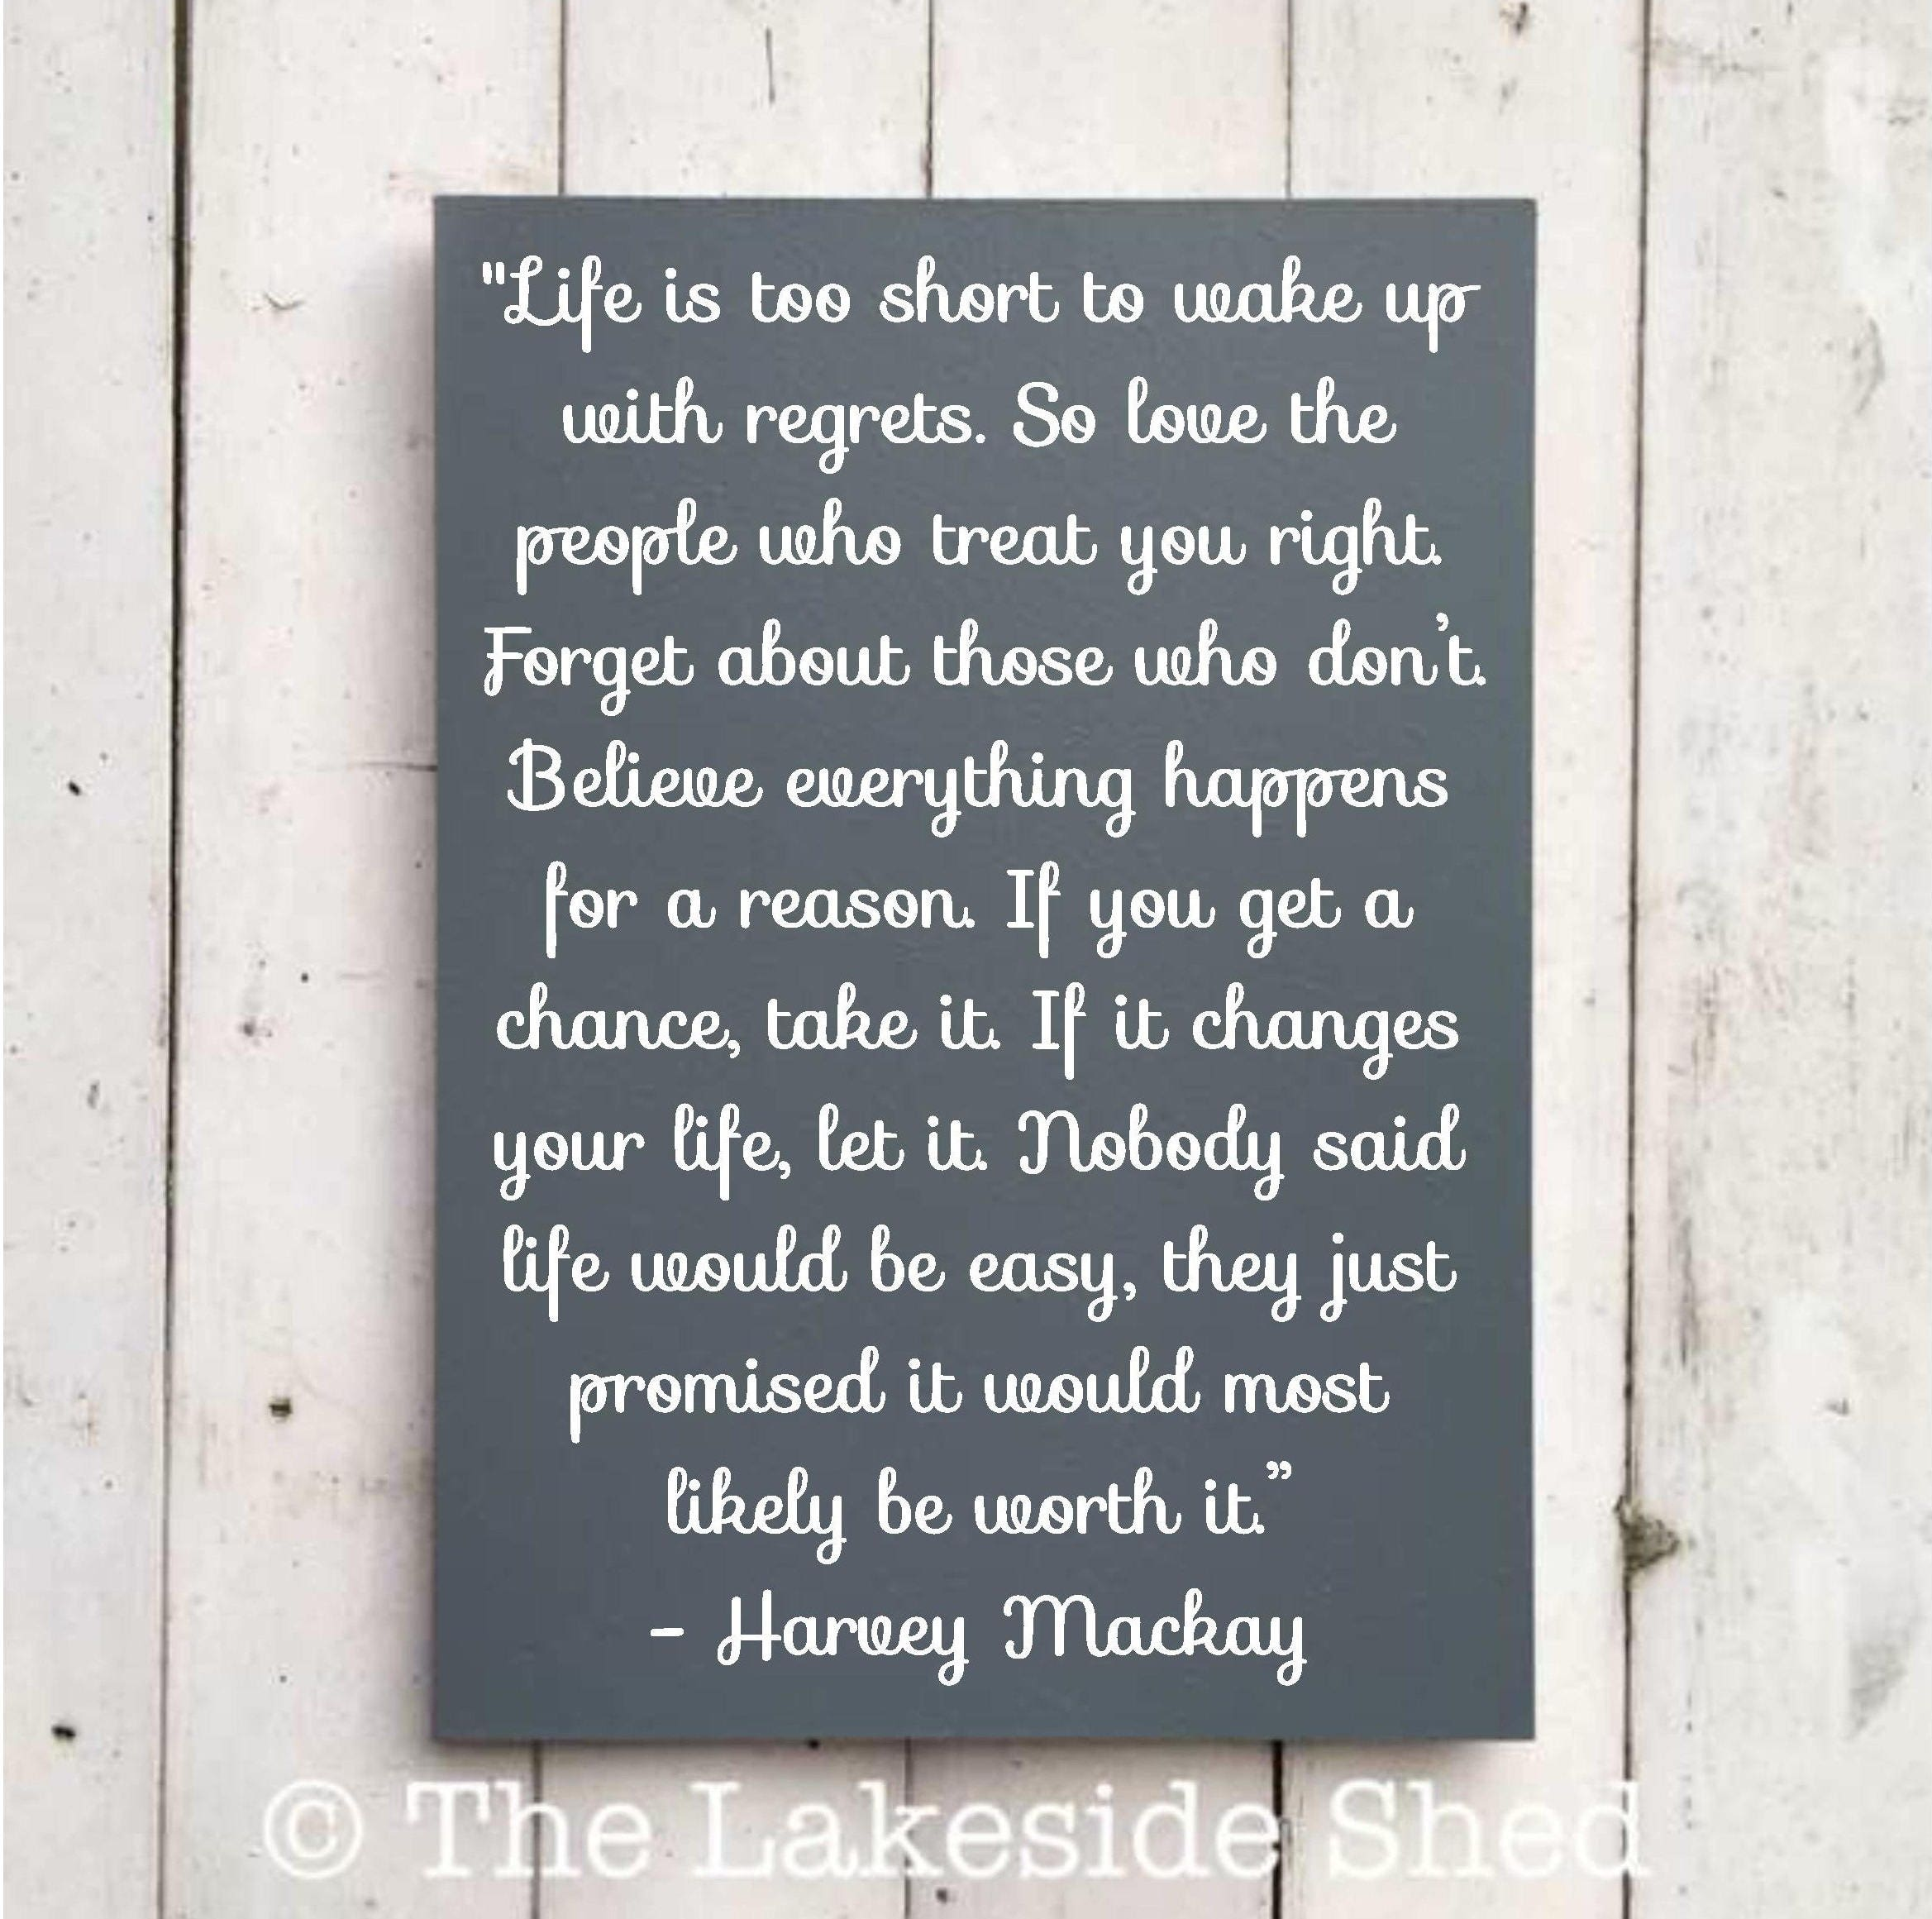 Love Finds You Quote: Life Is Too Short To Wake Up With Regrets. So Love The People